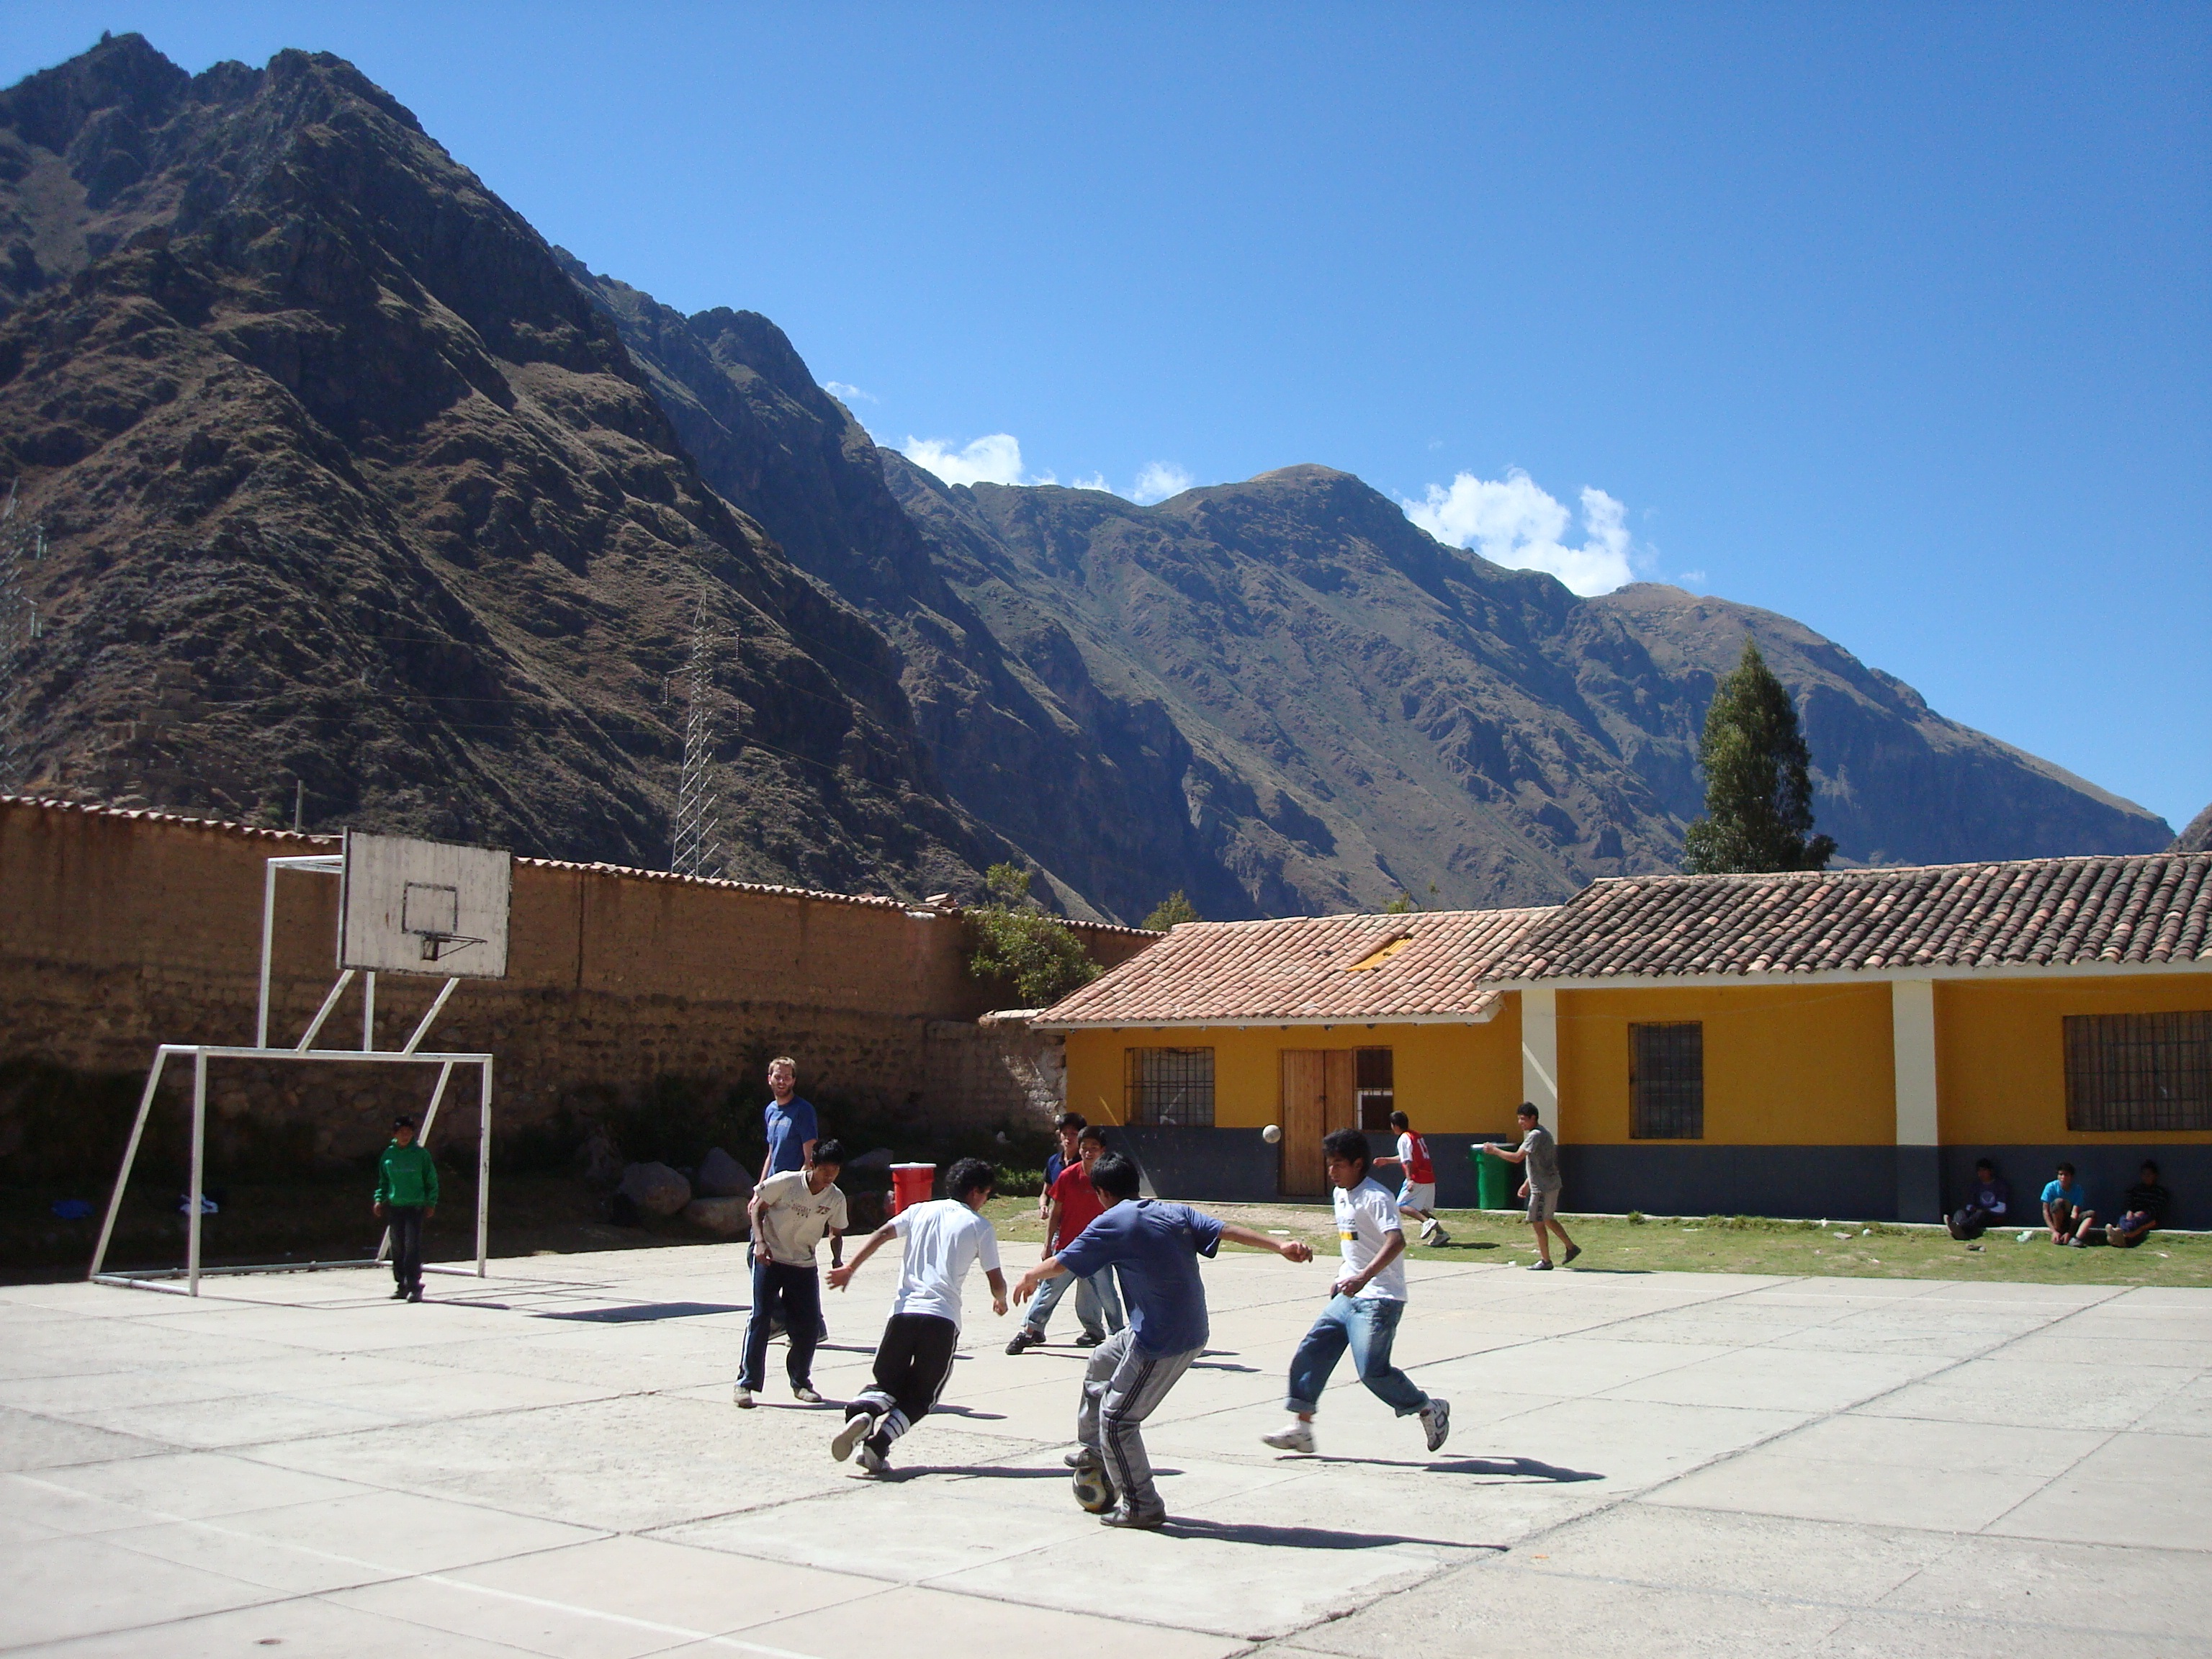 Soccer game in Peru